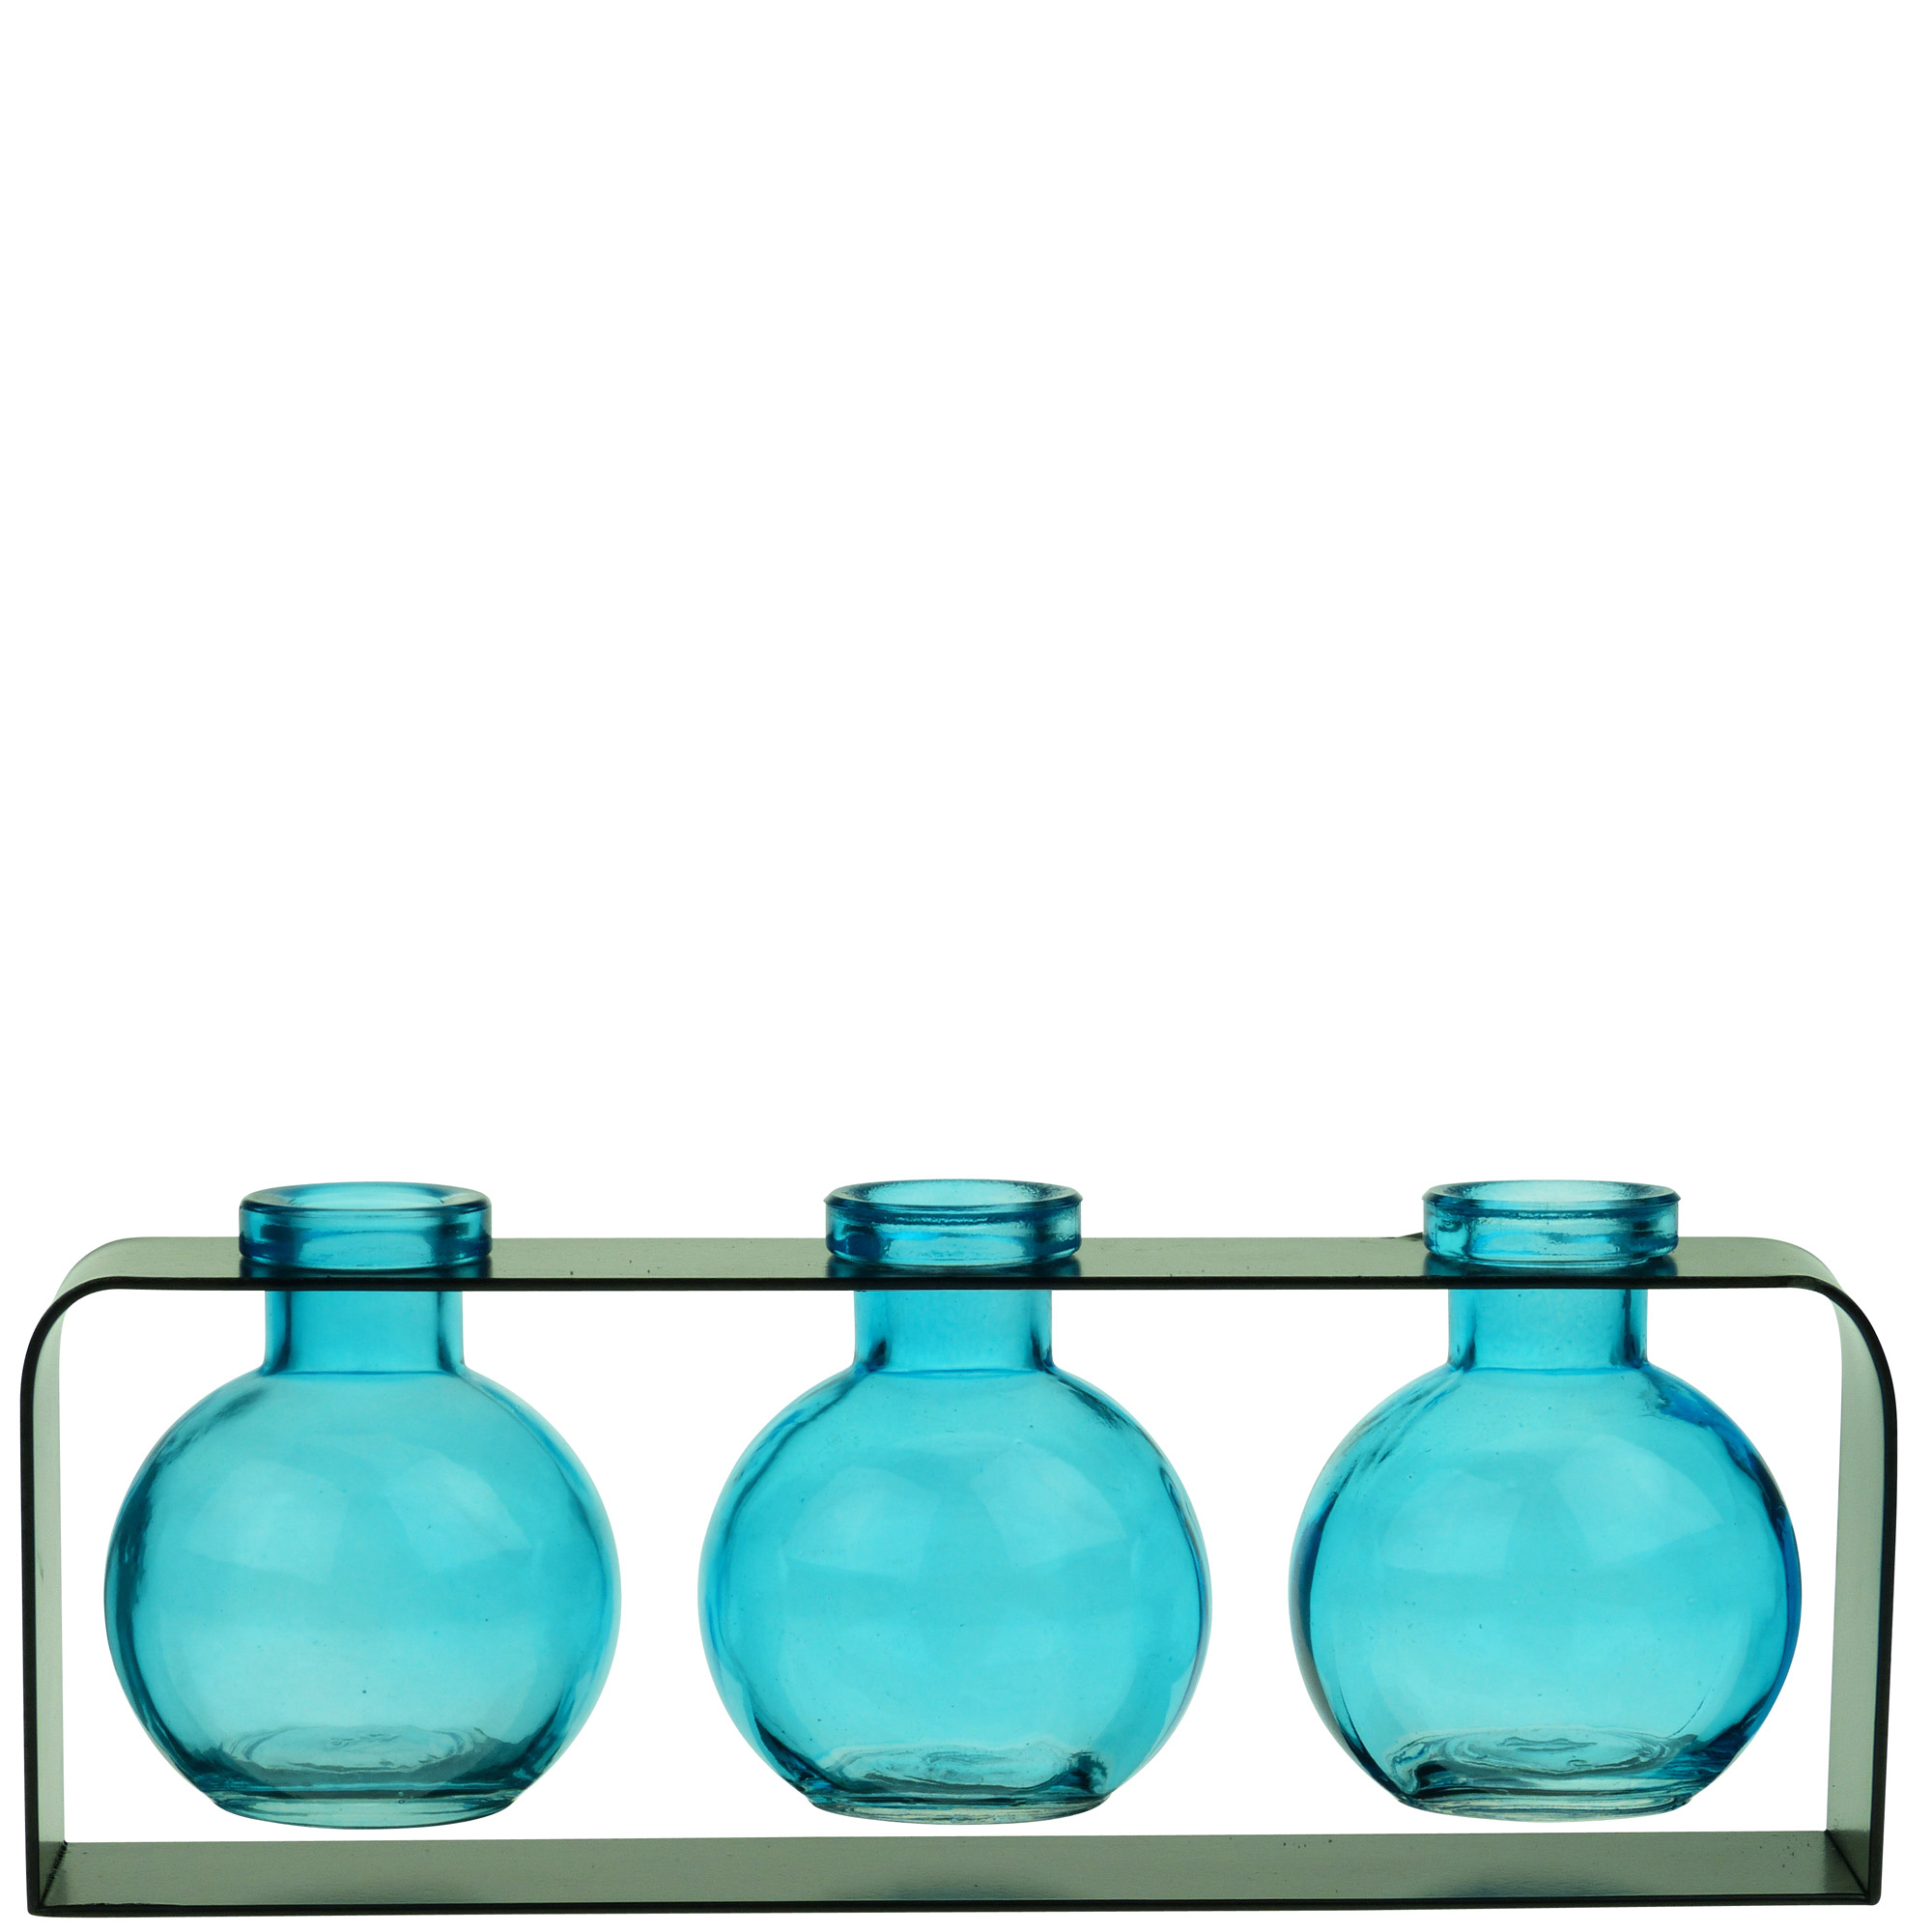 Couronne Co Trivo Three Recycled Glass Vases and Metal Stand. M507-200-00-P. 10 inches long. Clear - Walmart.com